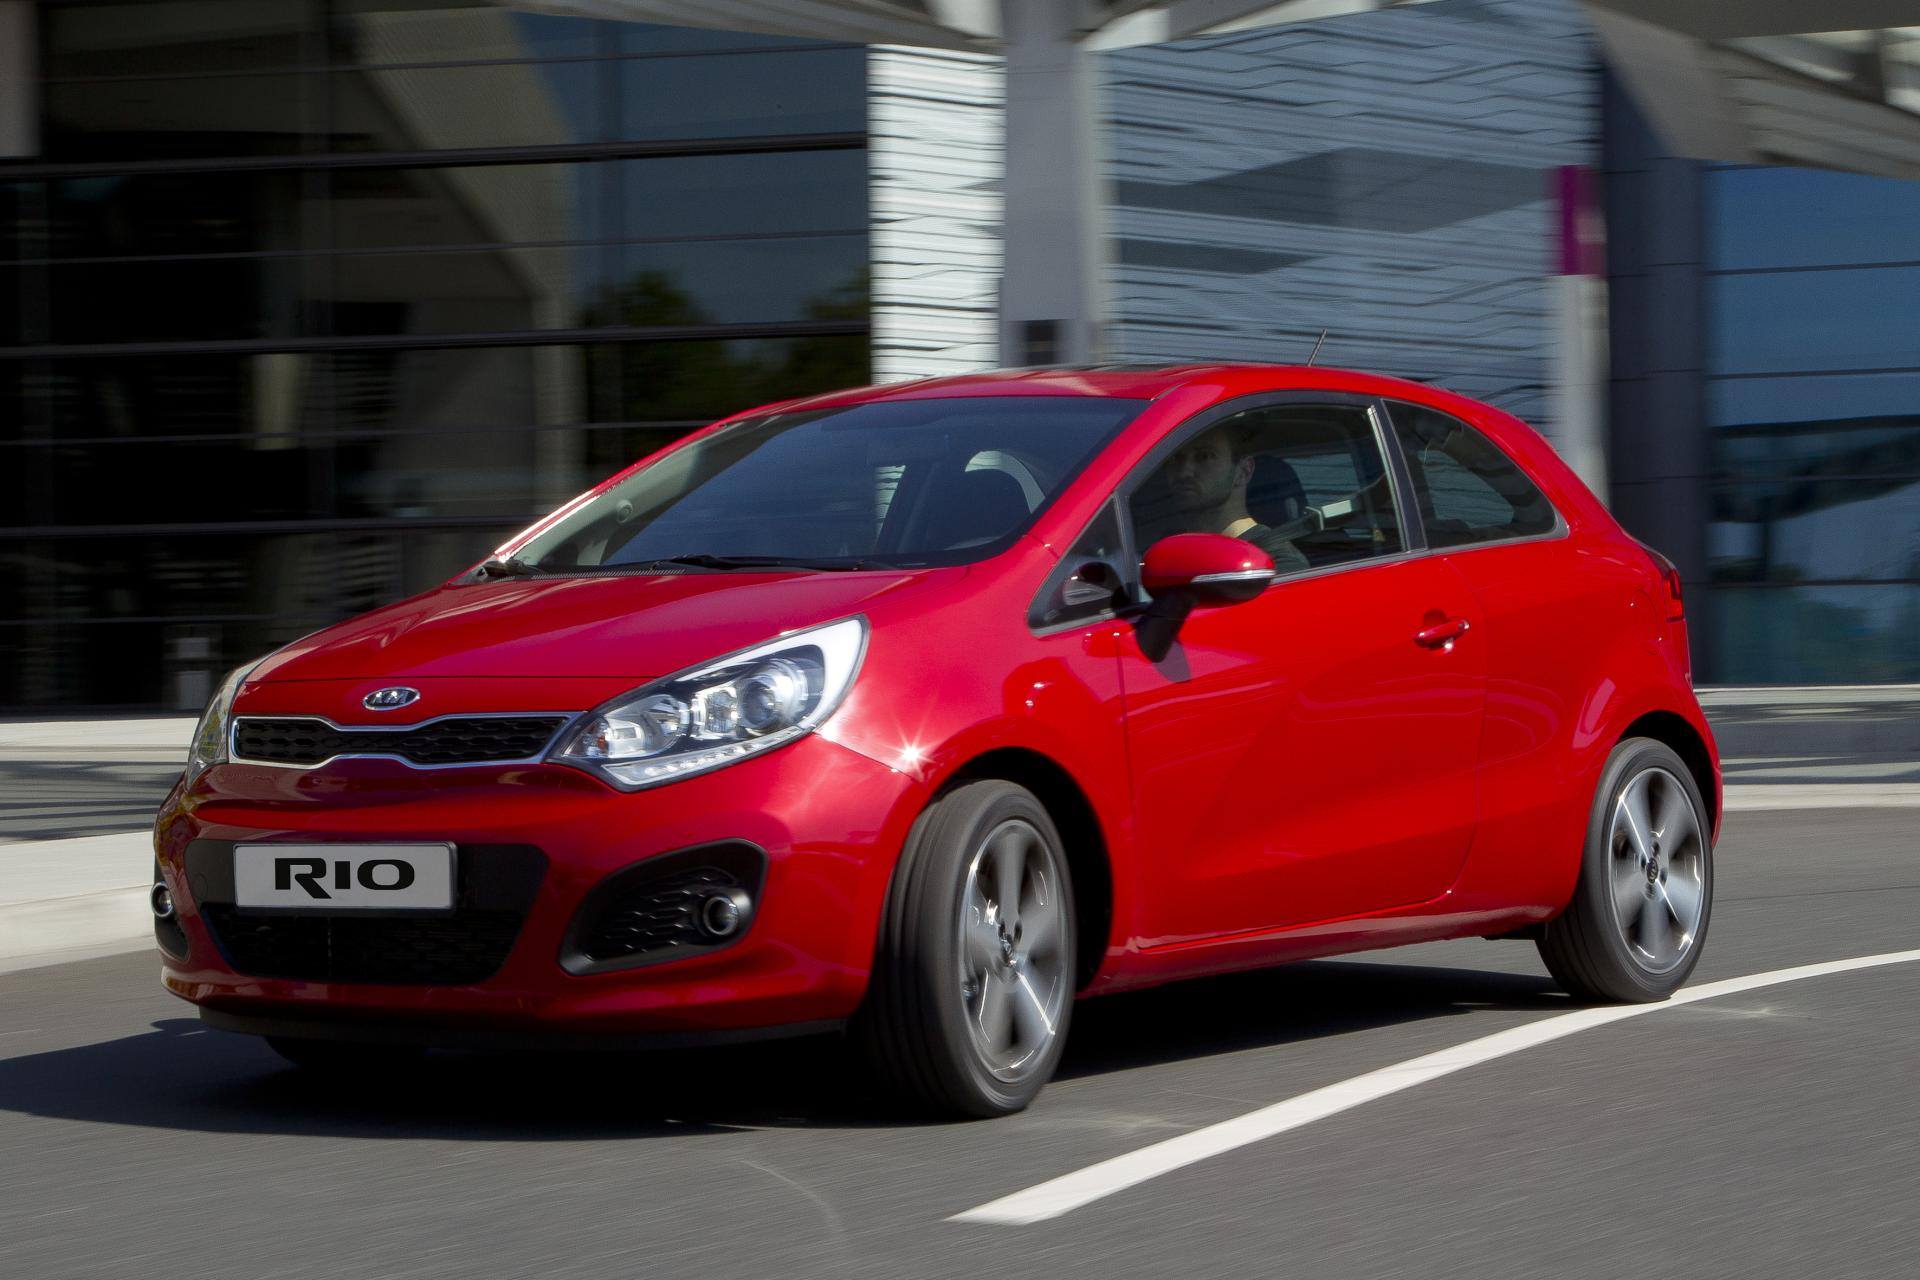 2012 kia rio 3 door technical specifications and data engine dimensions and mechanical details. Black Bedroom Furniture Sets. Home Design Ideas